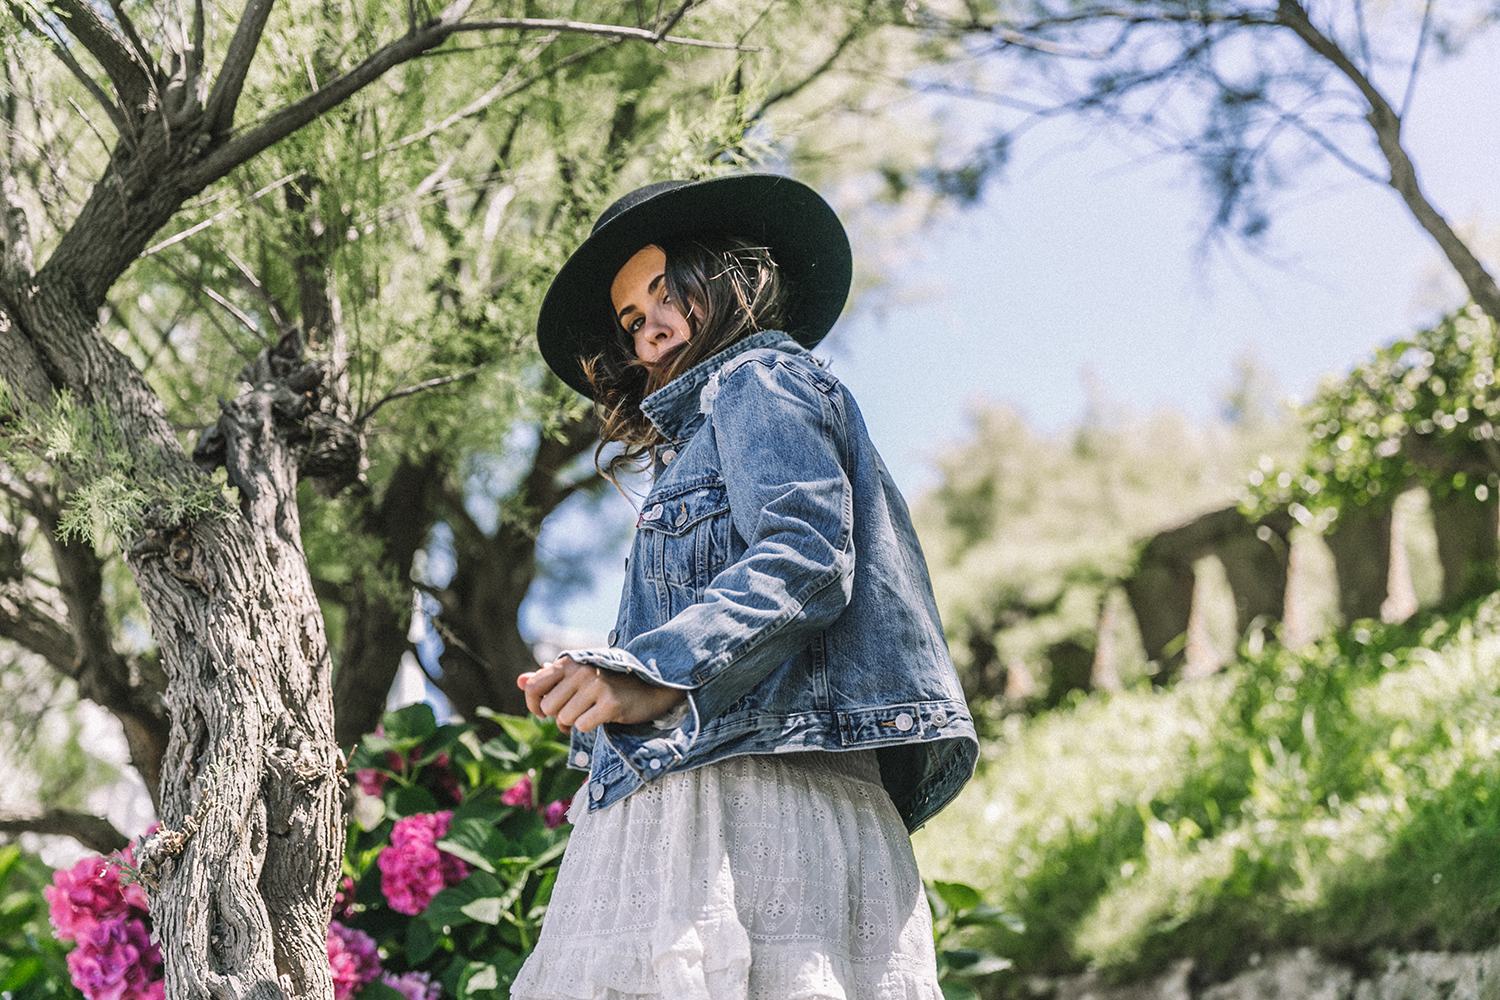 White_Outfit-Denim_Jacket-Lack_Of_Color_Hat-Outfit-Biarritz-Levis-Live_In_Levis-Street_Style-Summer-Boho_Skirt-Collage_Vintage-55